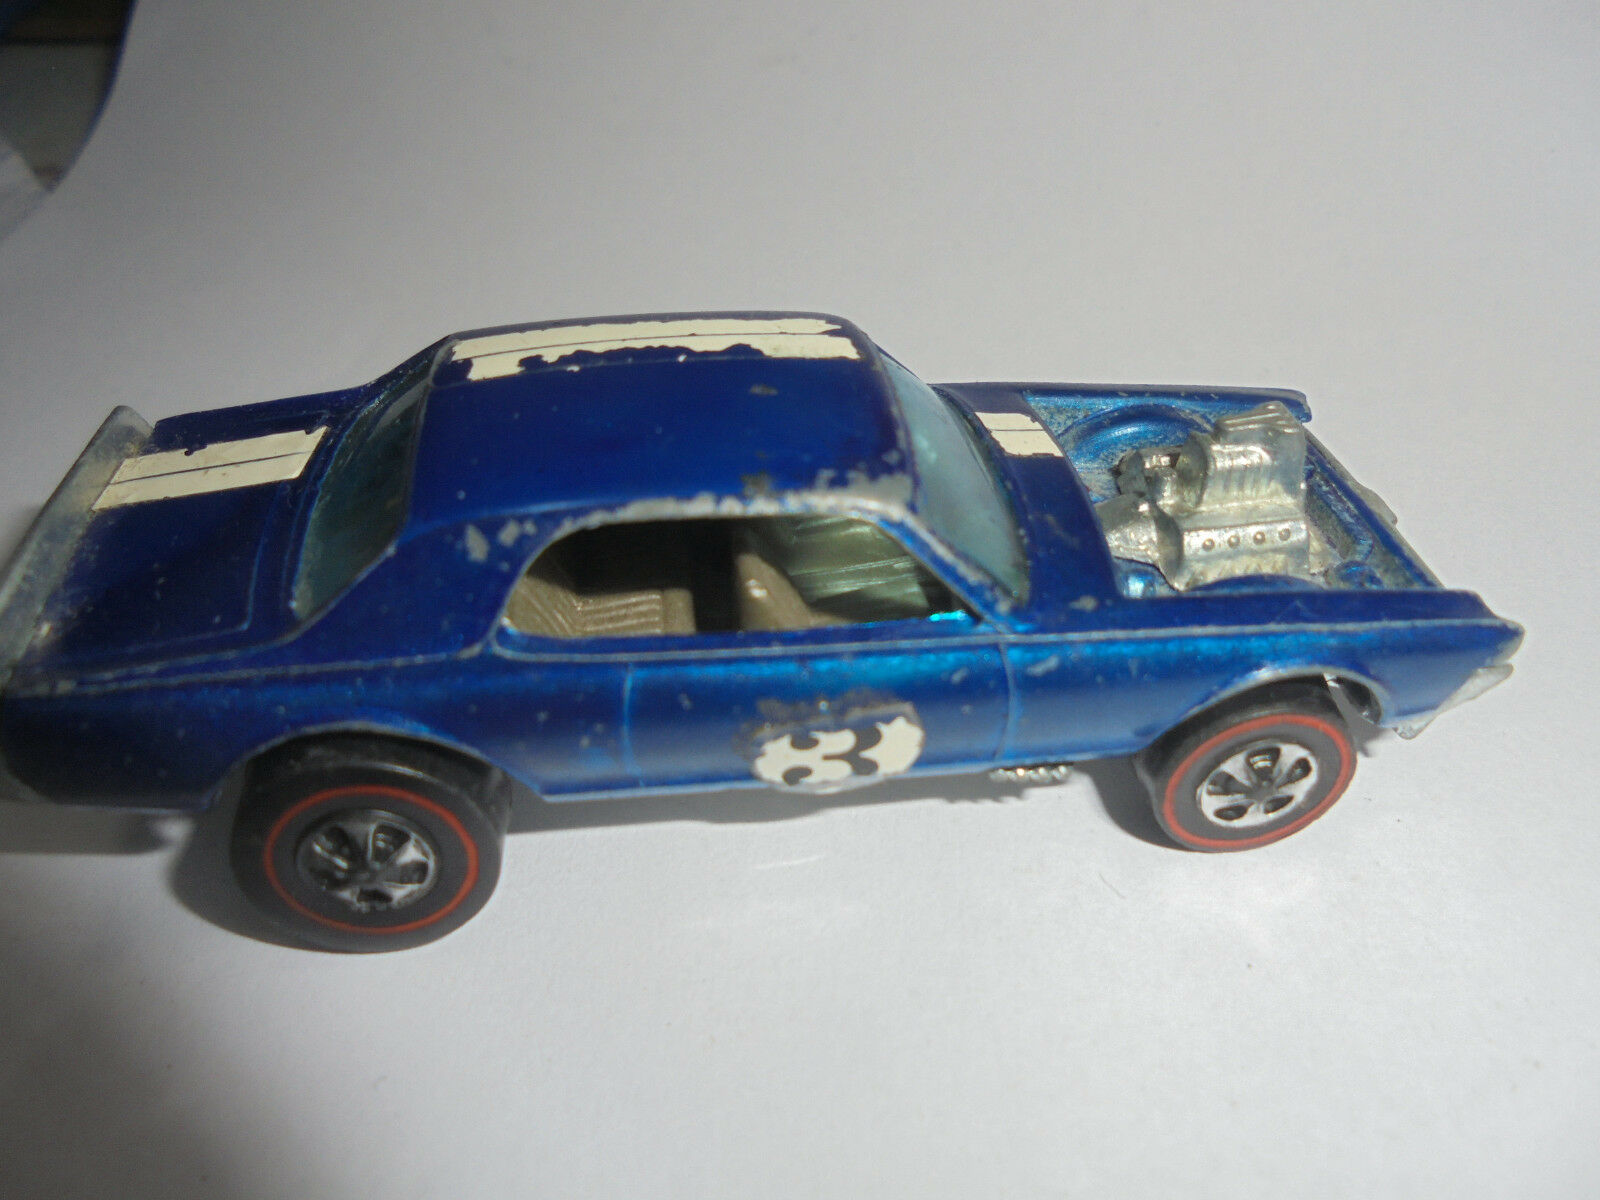 27822 Mattel Hot Wheels redline Nitty Gritty Gritty Gritty Kitty dark blue blue 1969 Hong Kong 0401d0